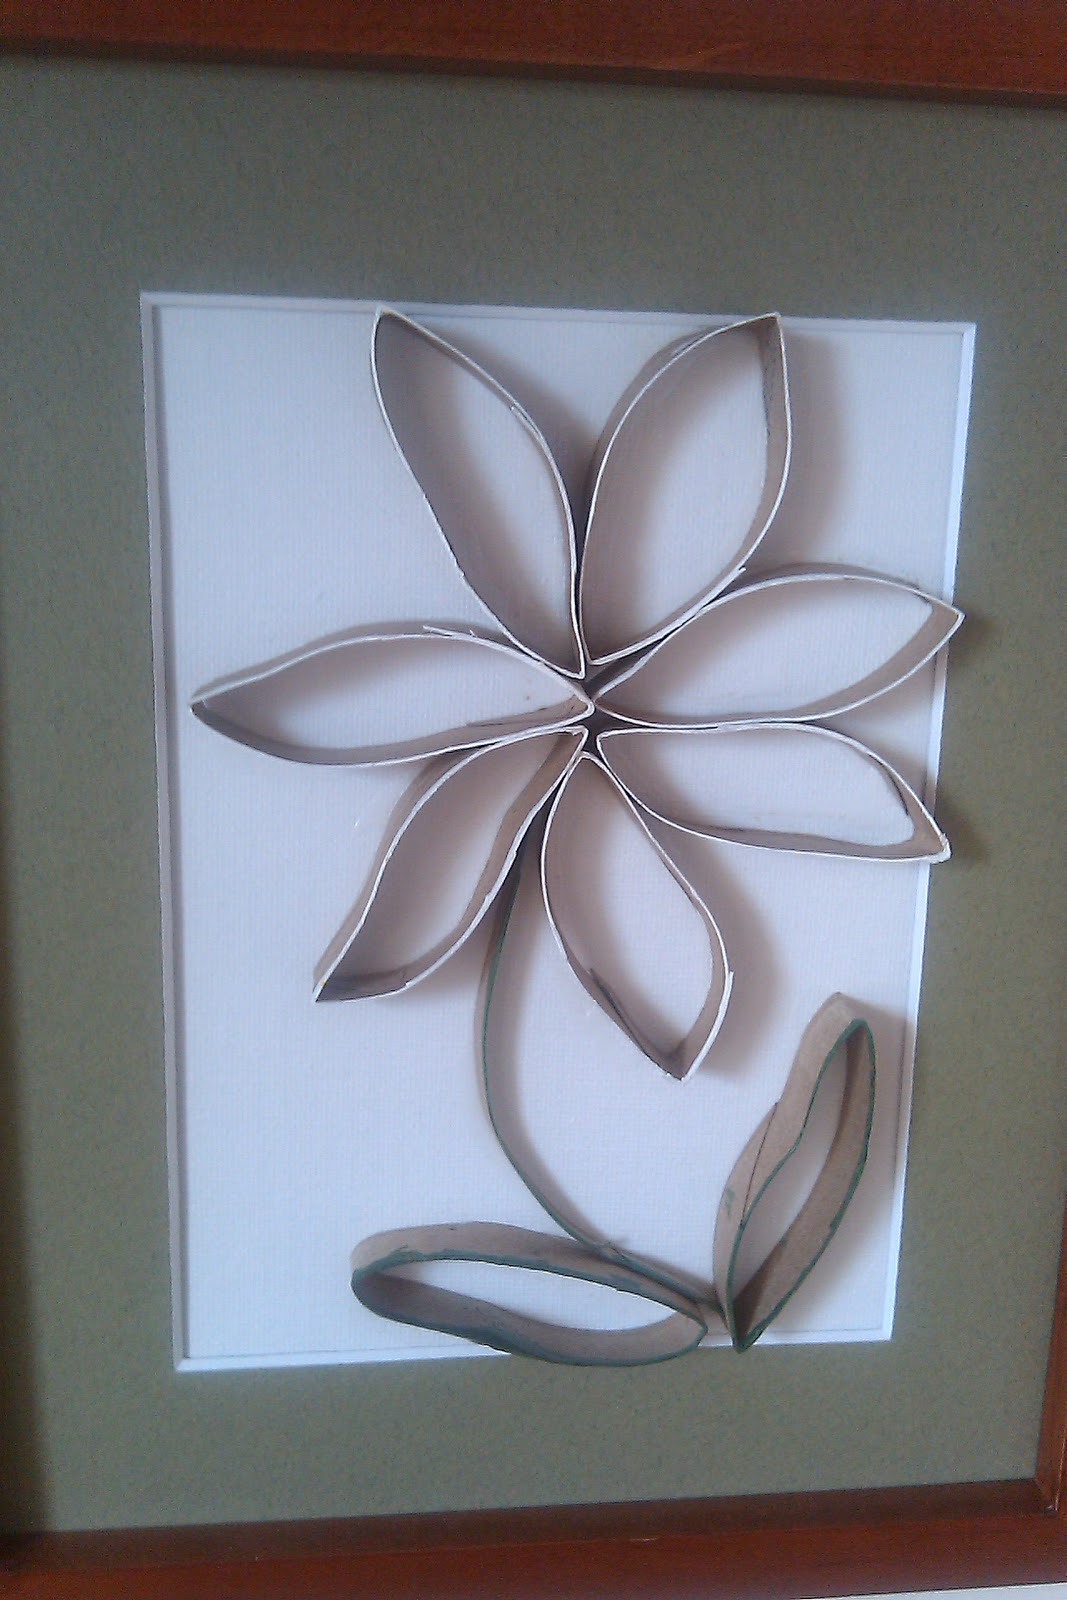 Upcycled stuff ten other uses for cardboard paper tubes for Cardboard tube flowers